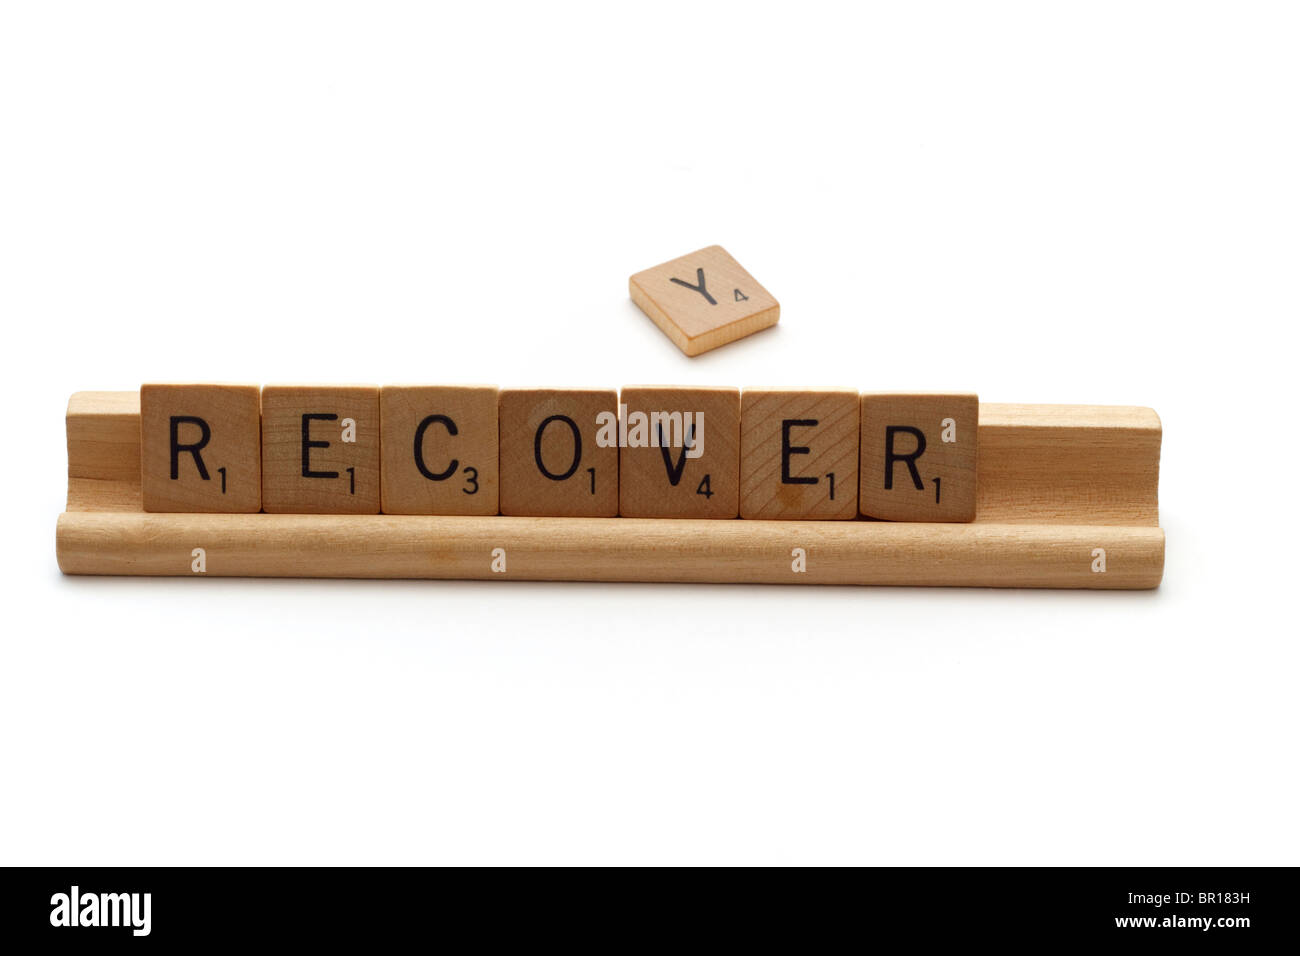 Incomplete recovery concept illustrated using Scrabble tiles - Stock Image